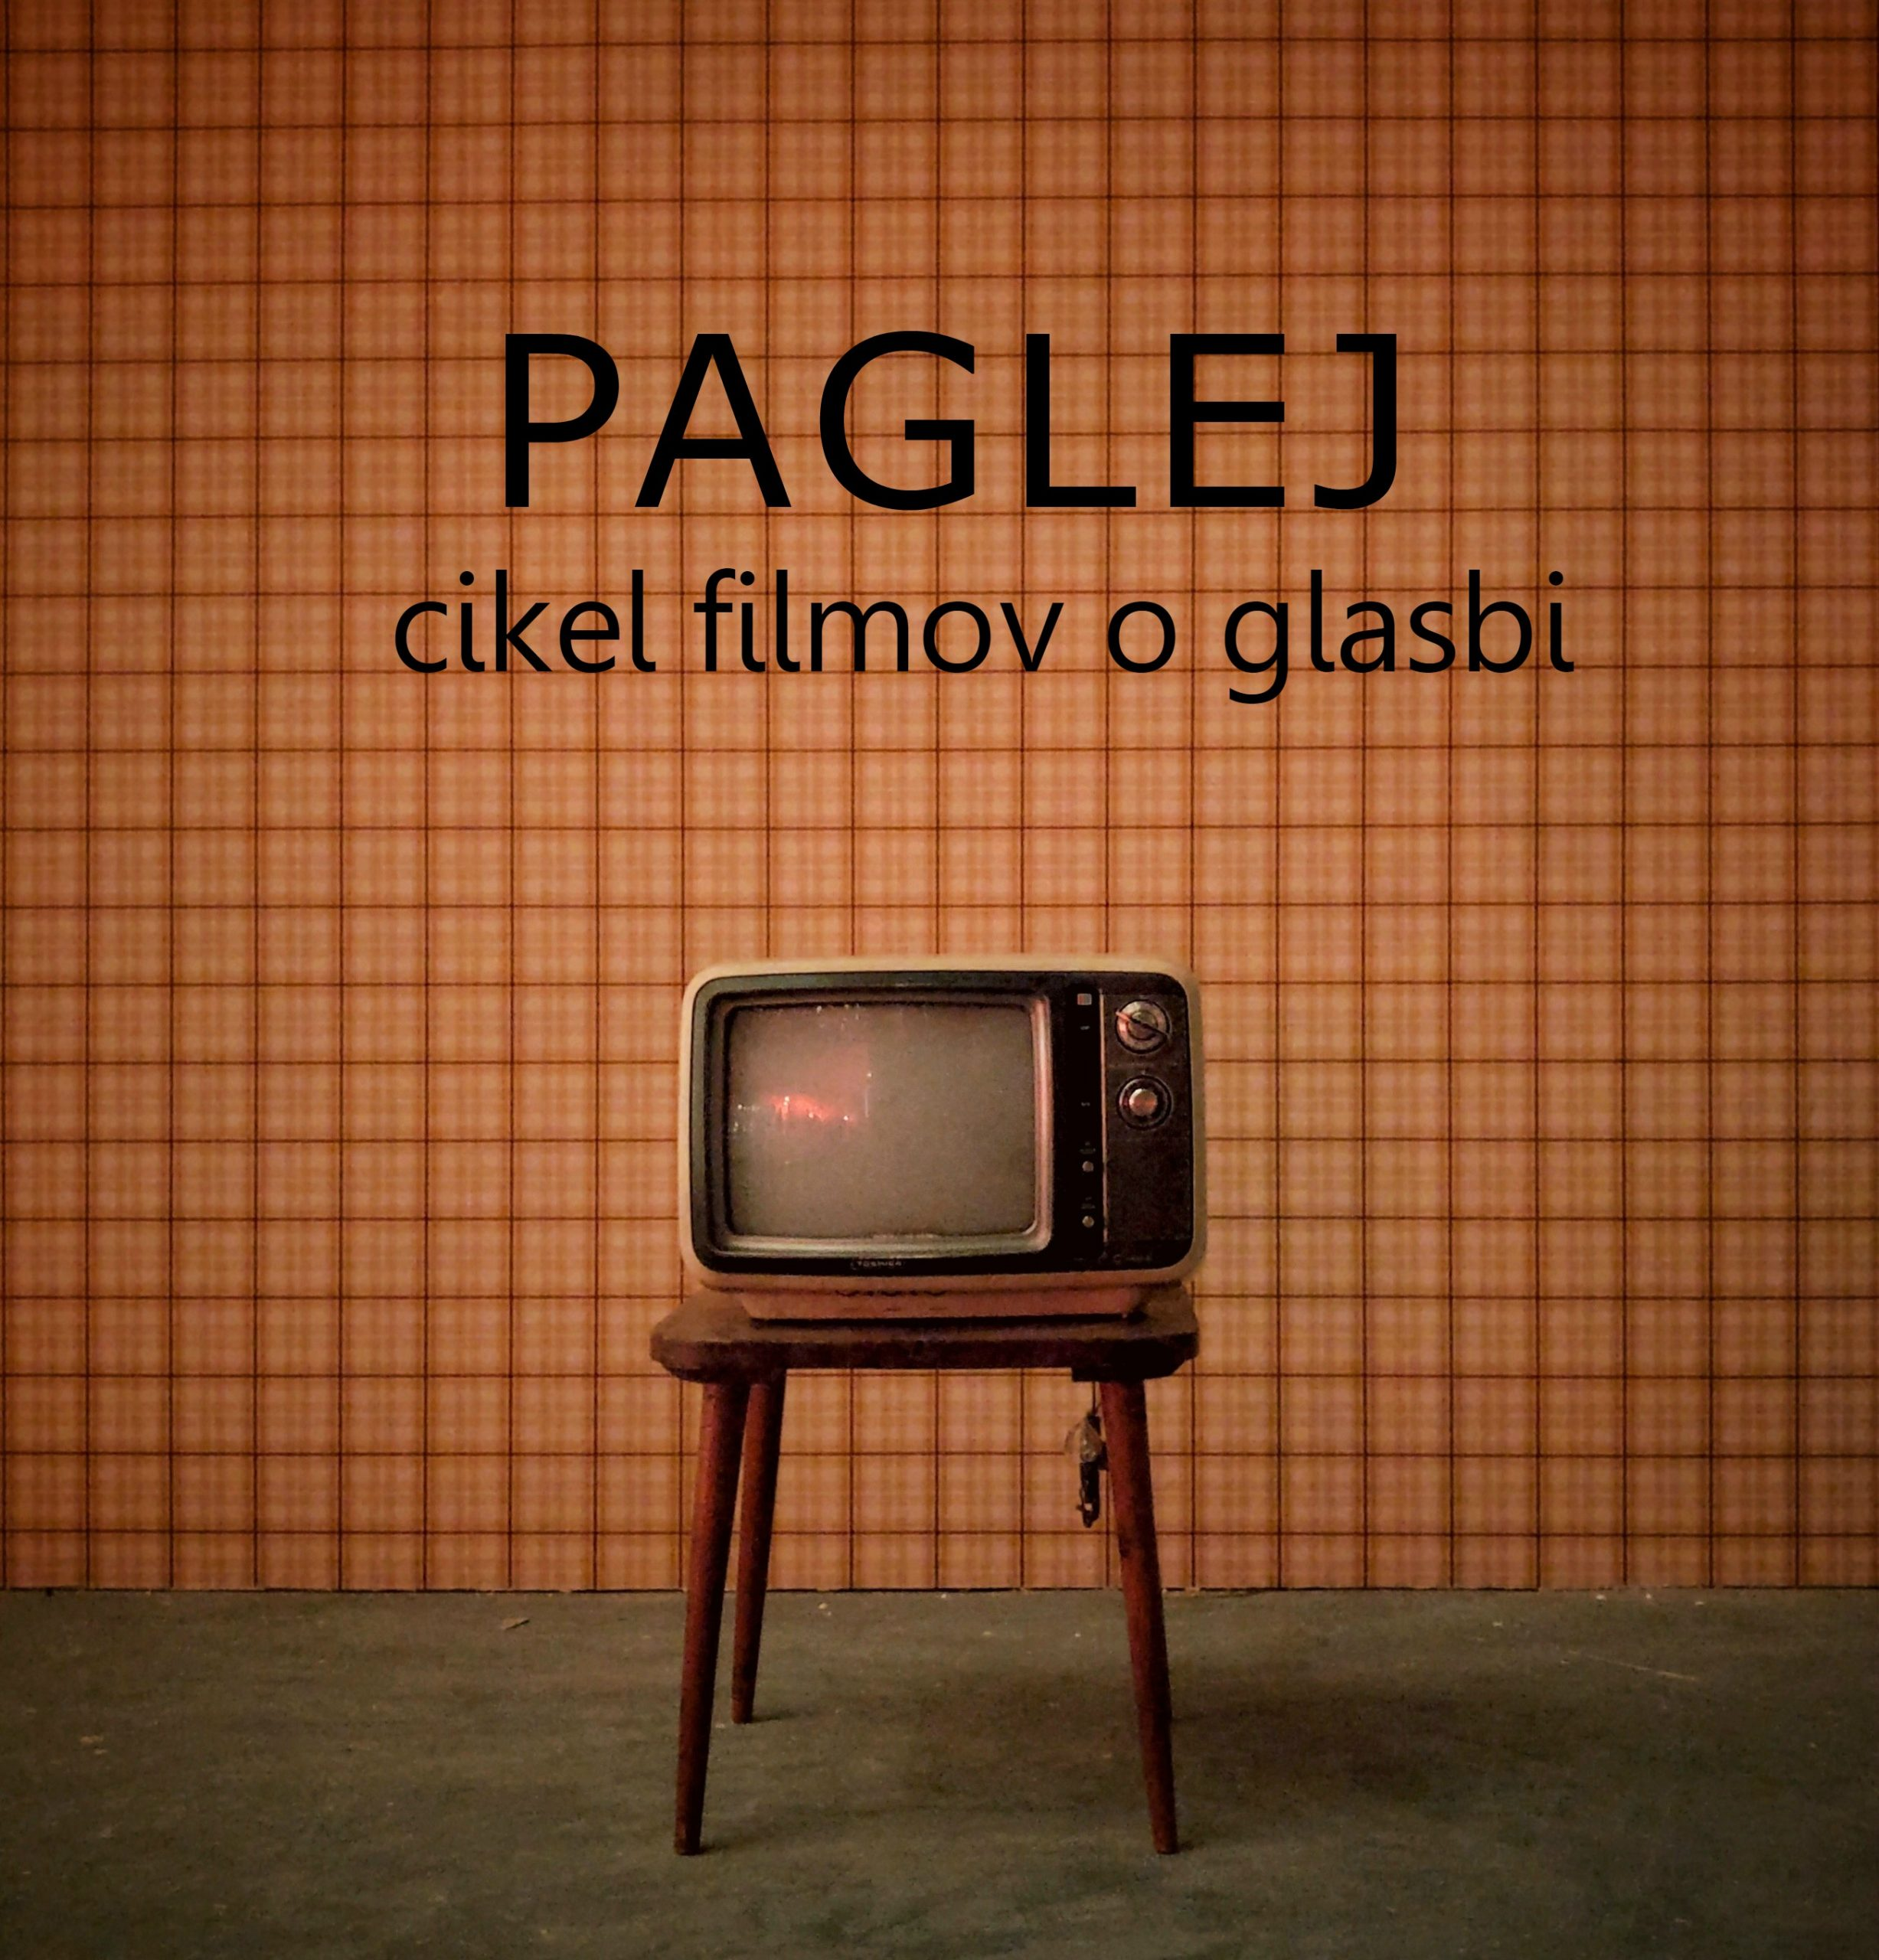 PAGLEJ – A series of movies about music